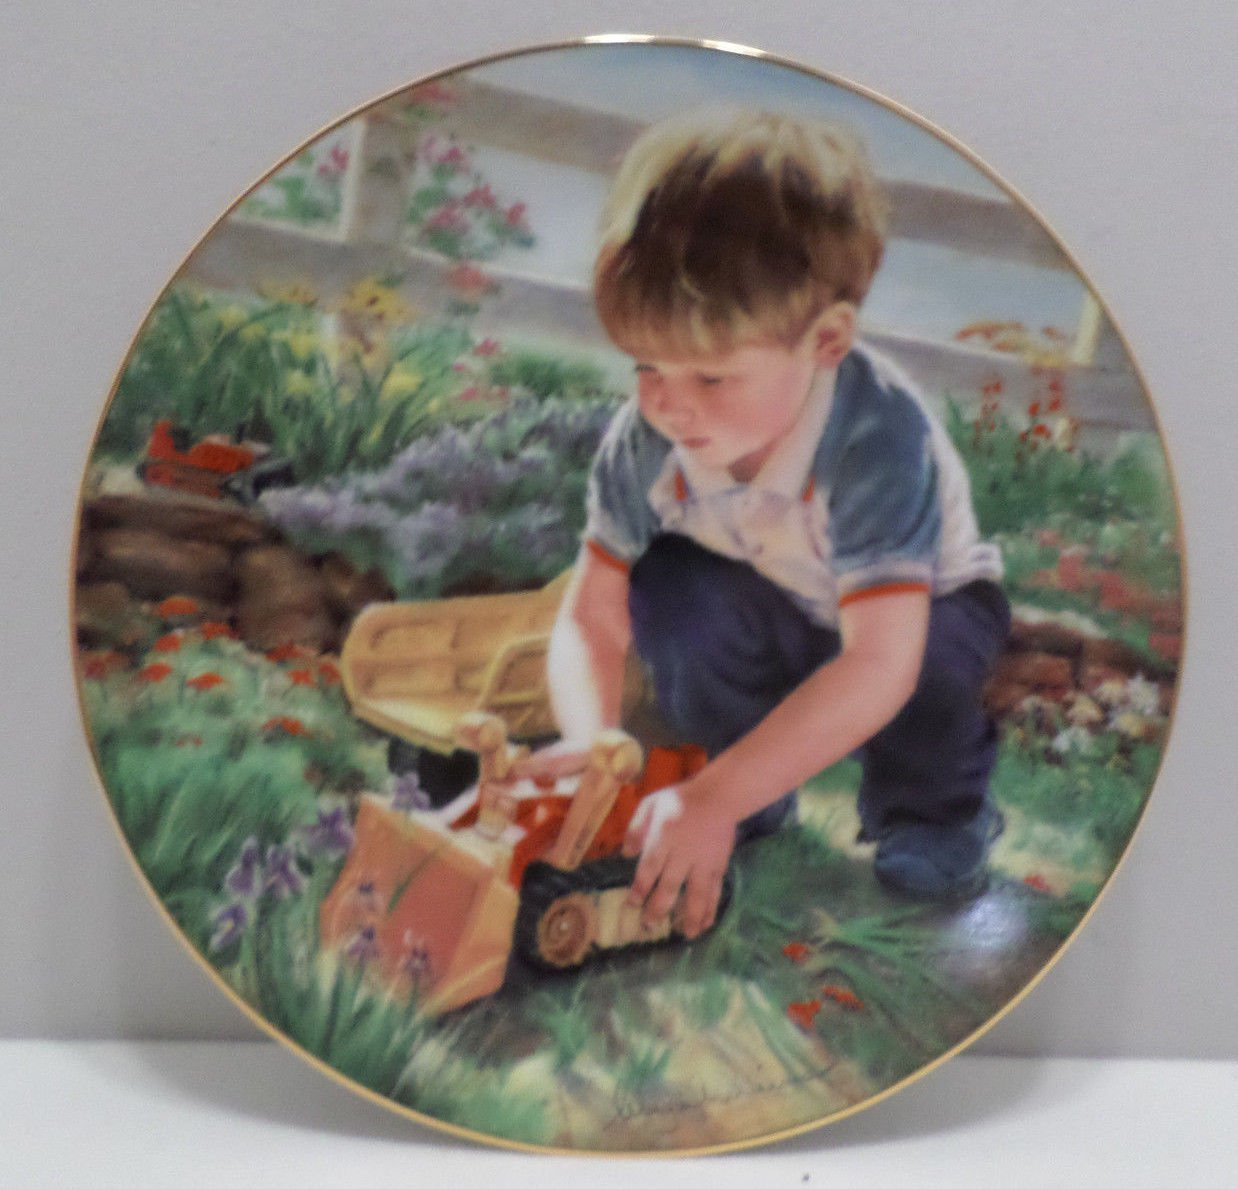 1986 Collector Plate Forgive Our Trespasses by Abbie Williams Hamilton Collection